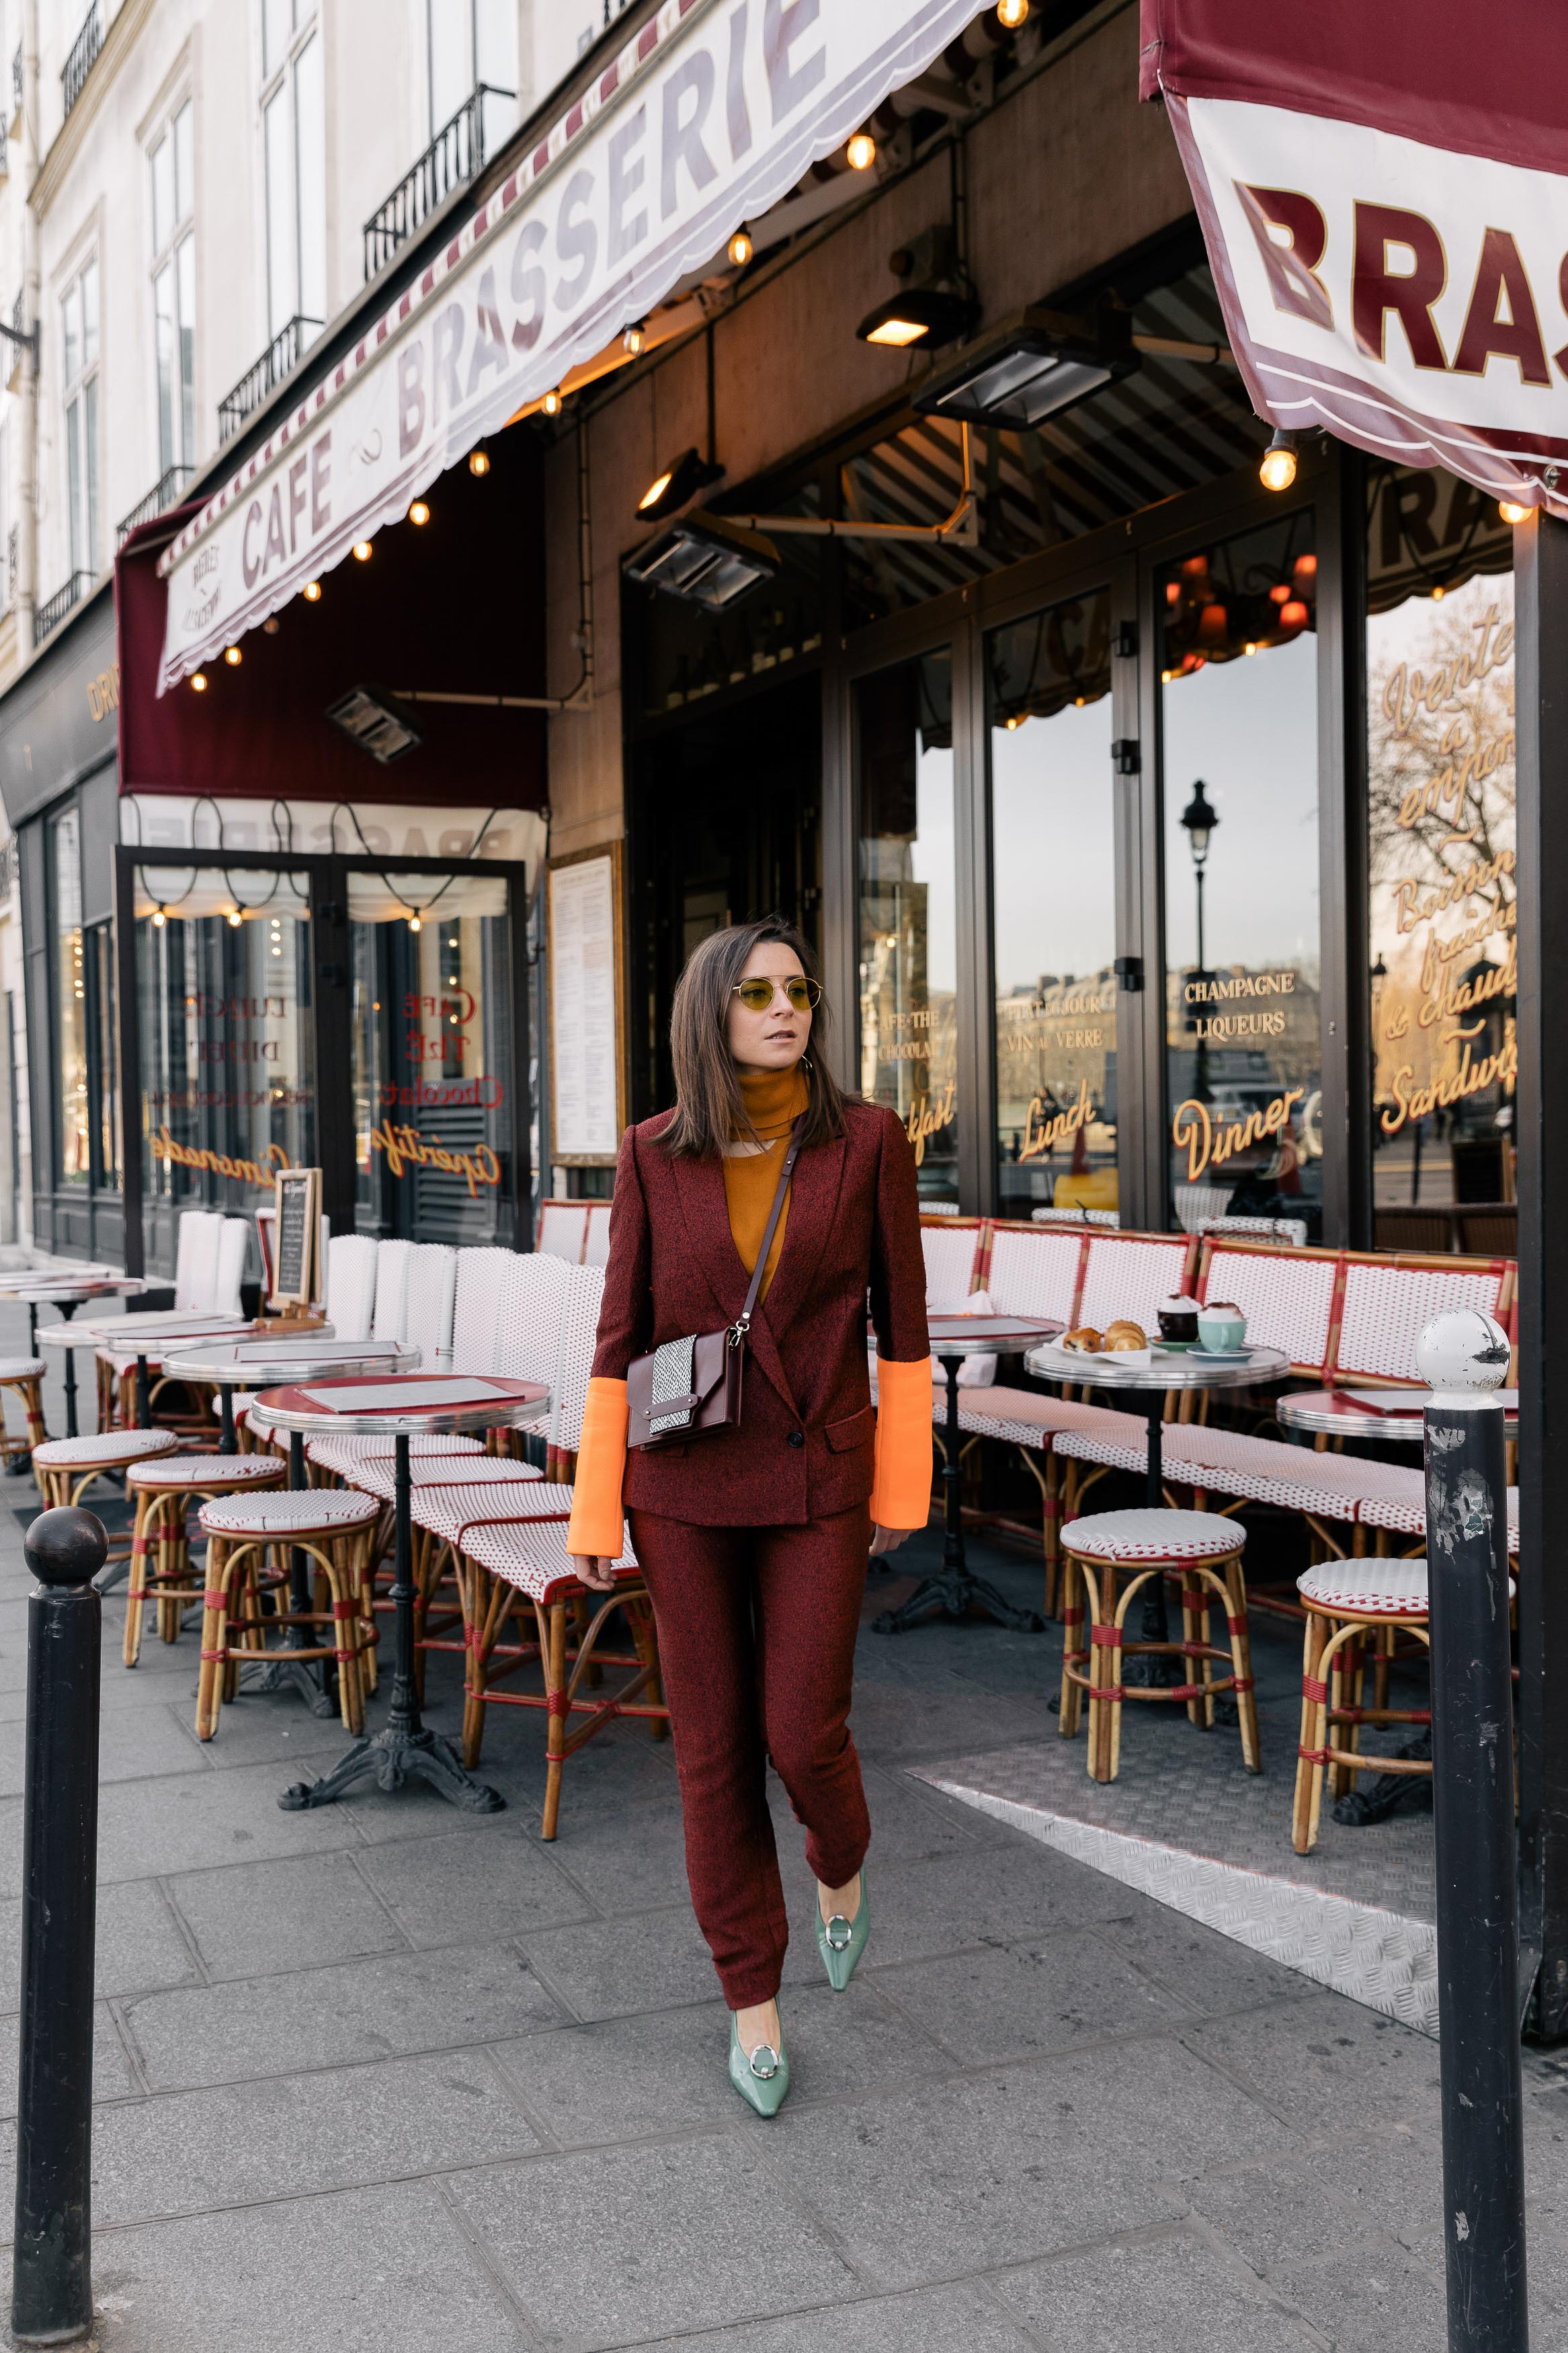 Best Street Style Paris Fashion Week Mars 2019 Julia Comil / French Fashion Blogger in Los Angeles Outfit for PFW Fall Winter 2019 show - Suit Chalayan Studio, Bag Neko Neko Paris, shoes Yuul Yie, top, sunglasses alhem